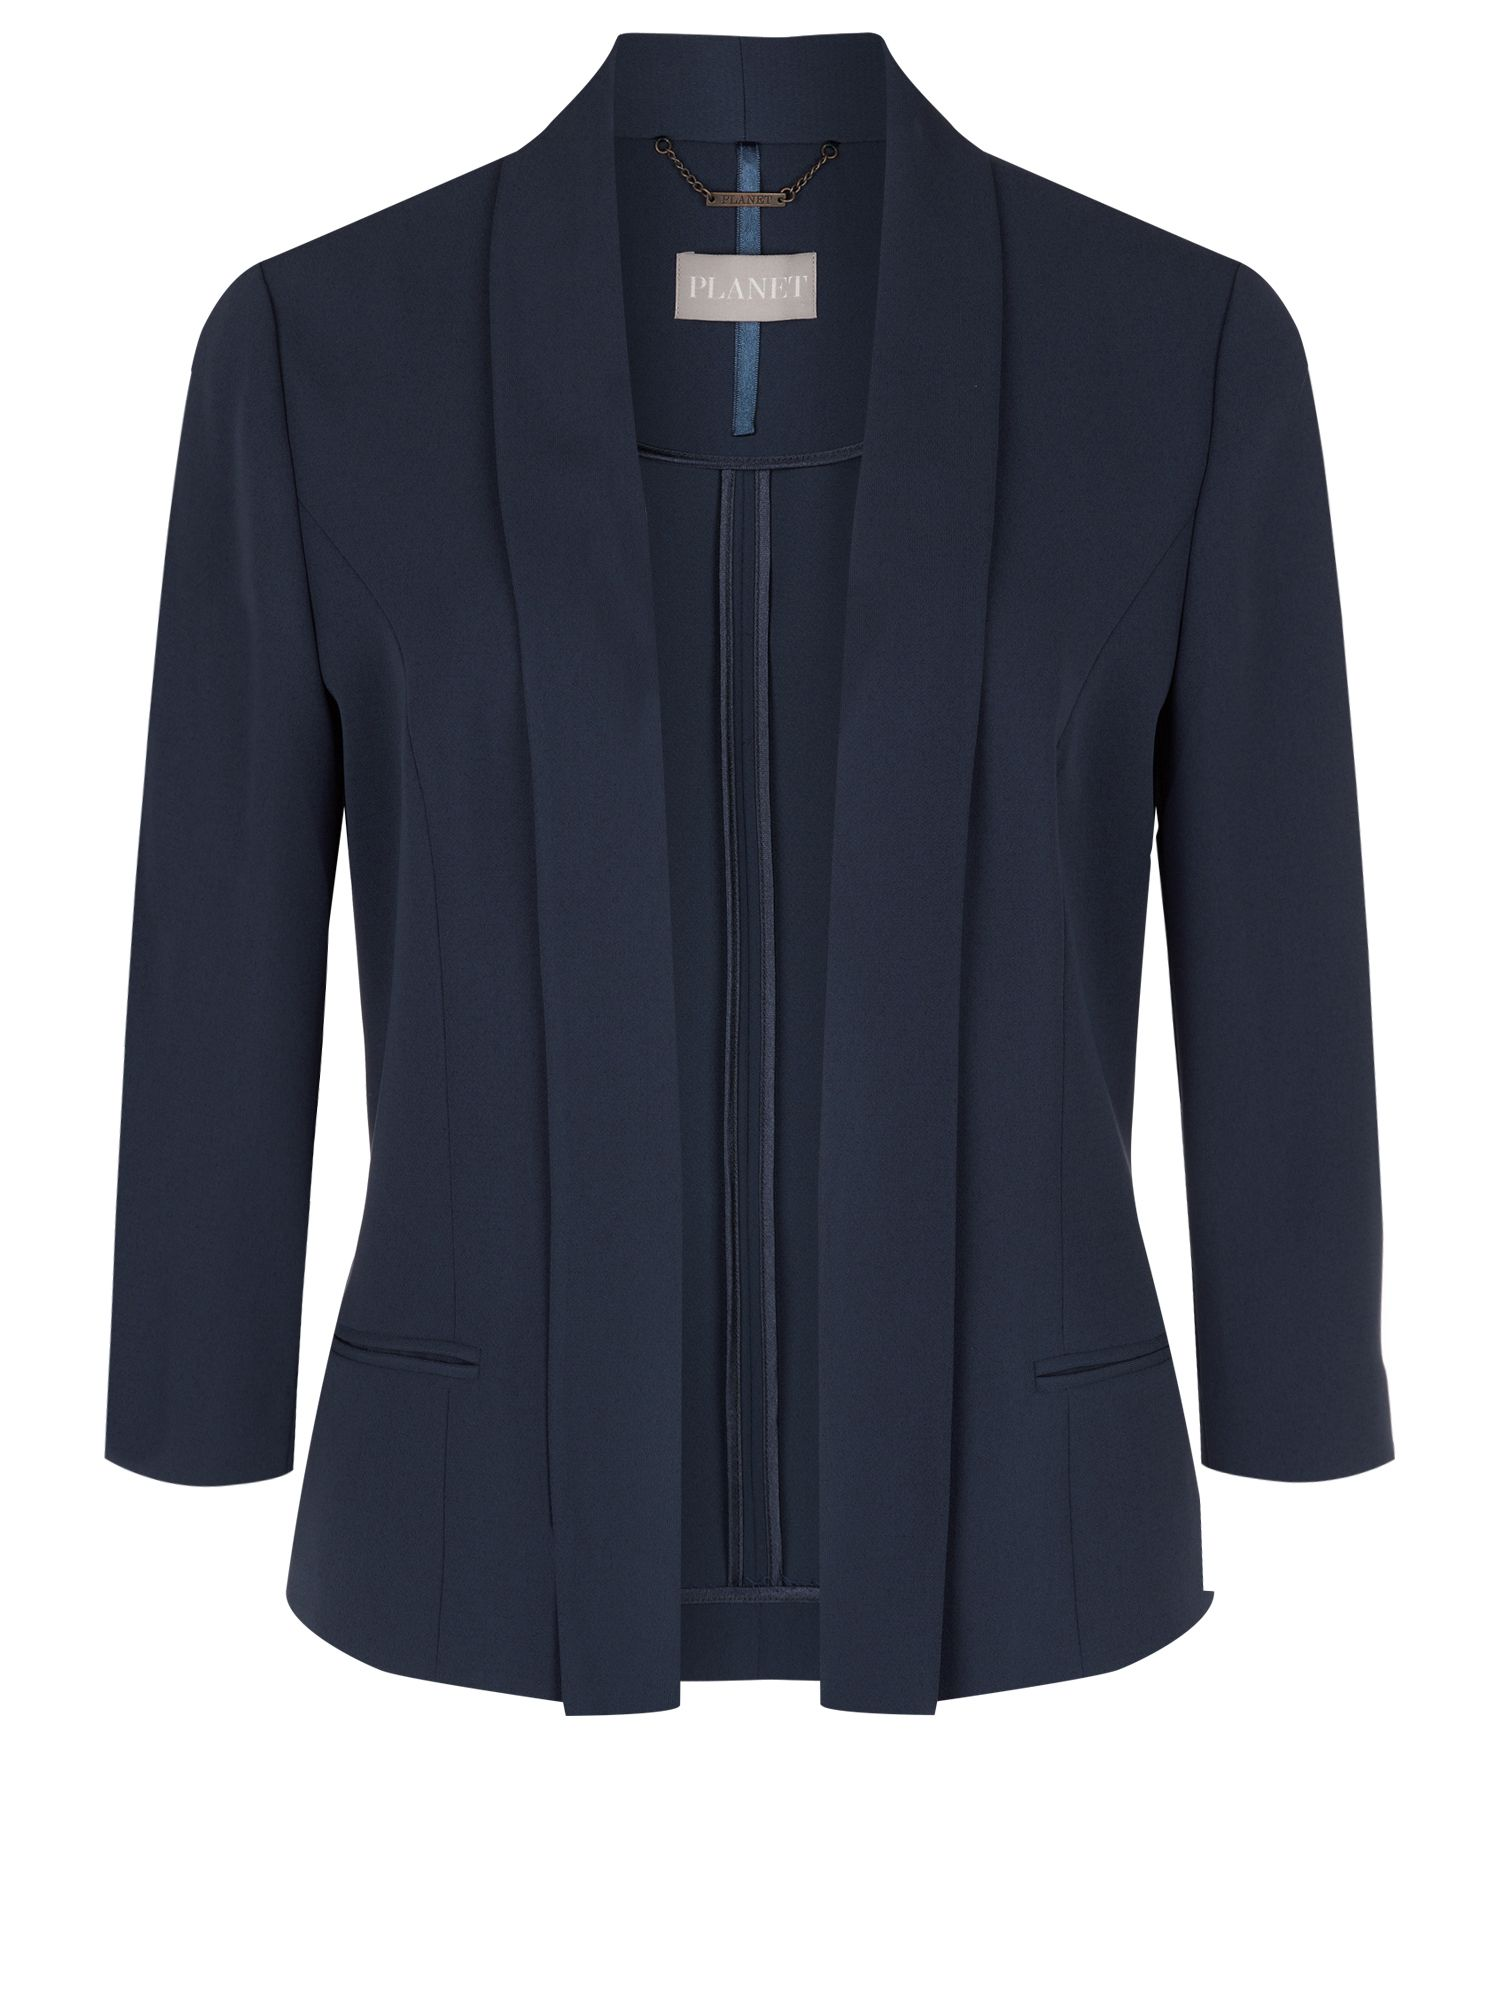 New navy short jacket